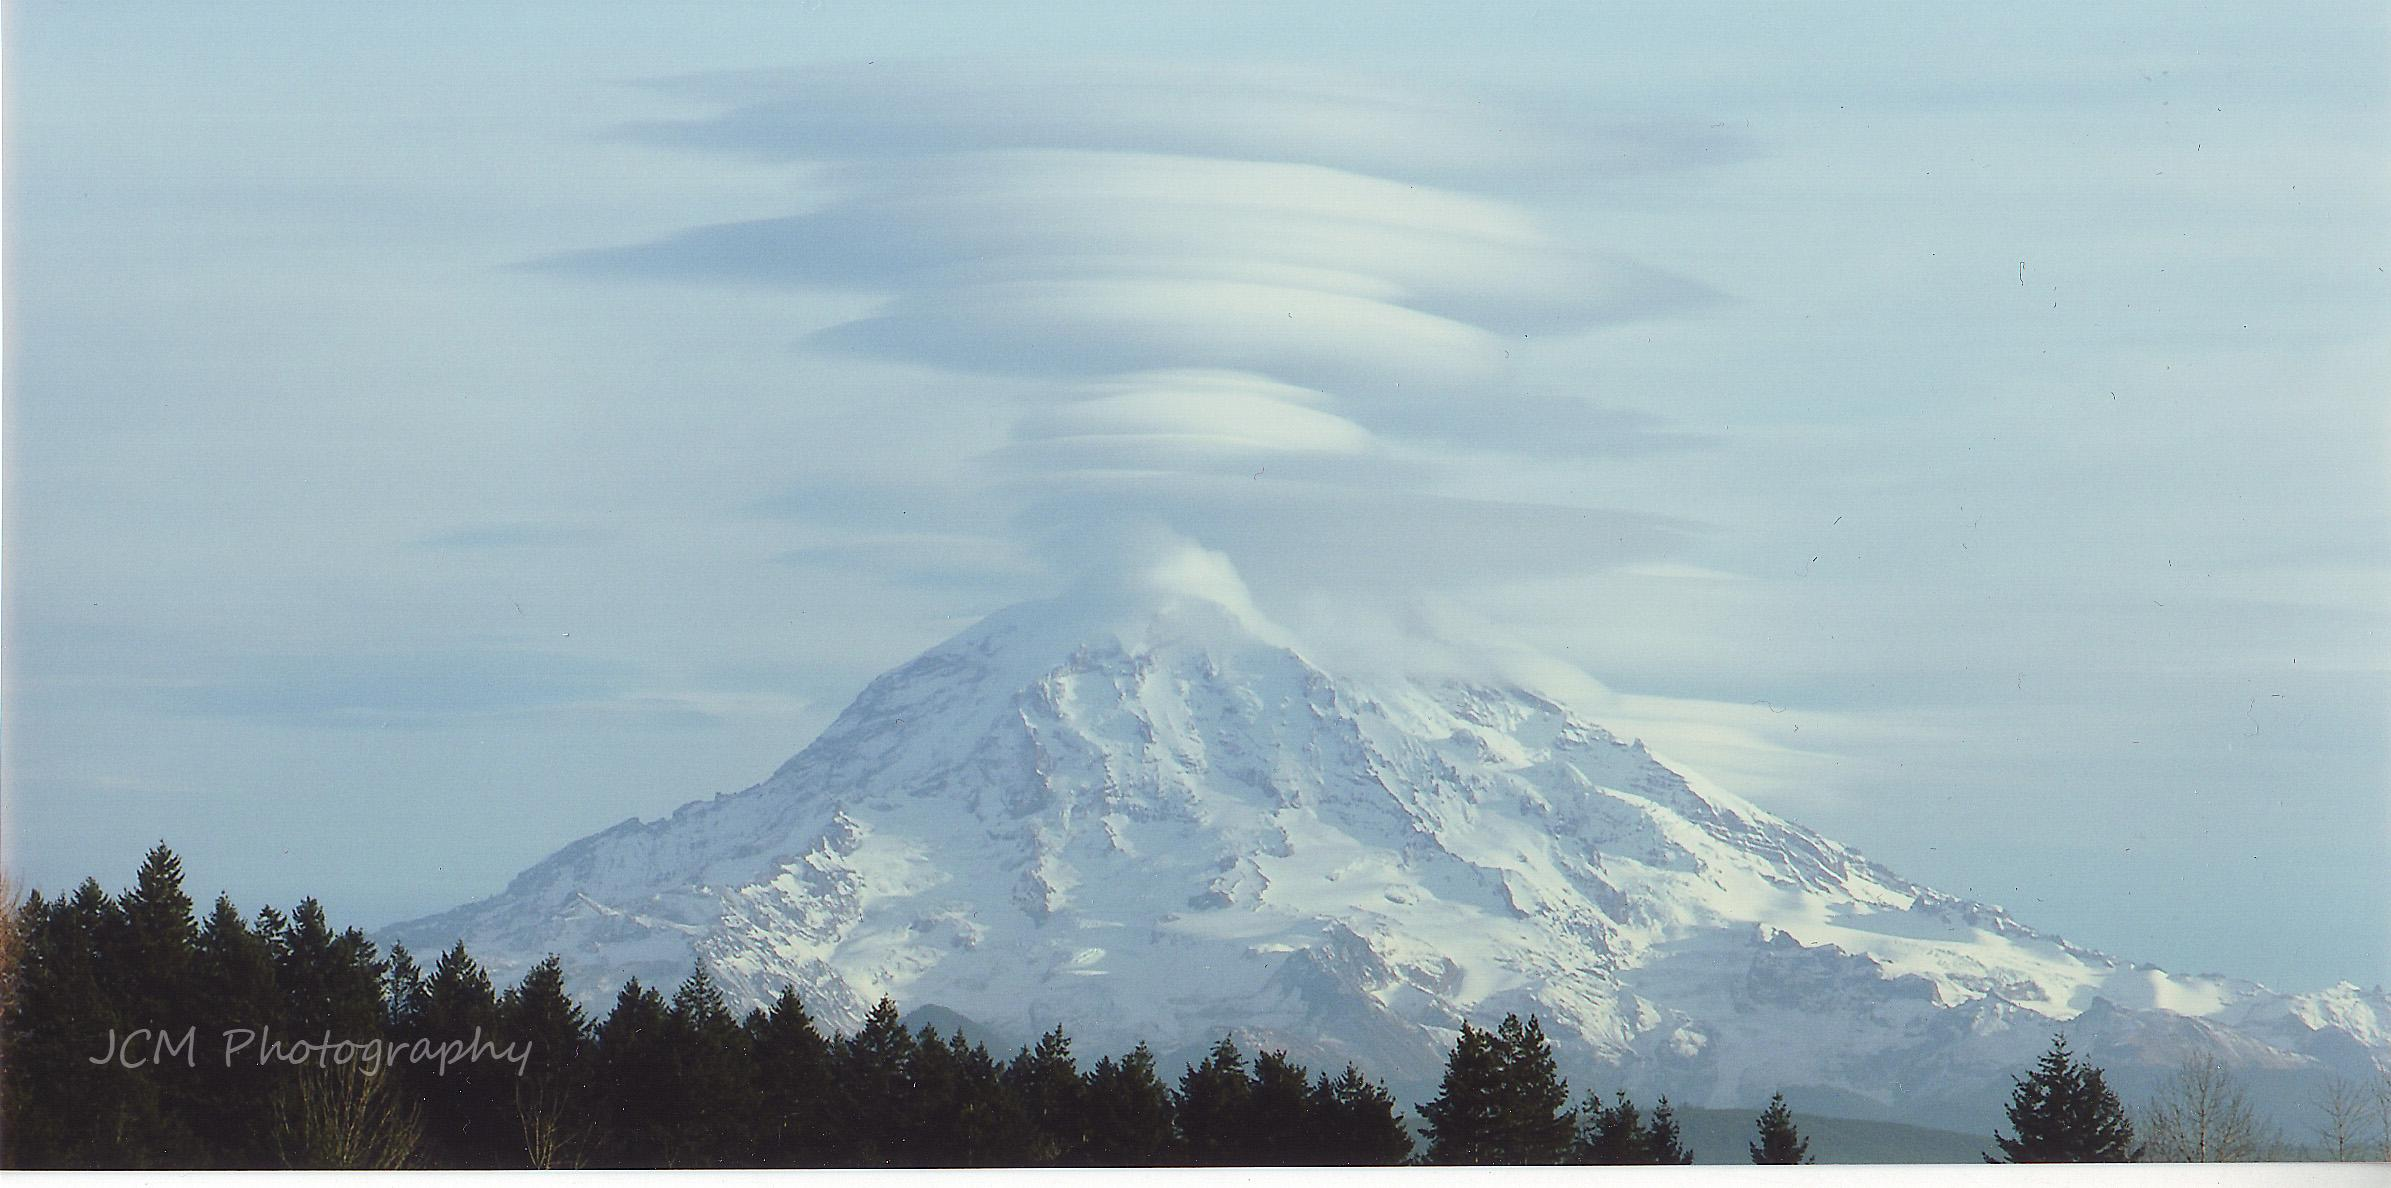 A dramatic display of lenticular clouds over Mt. Rainier on Dec. 5, 2008. (Photo courtesy: Marcy LaGagnier)